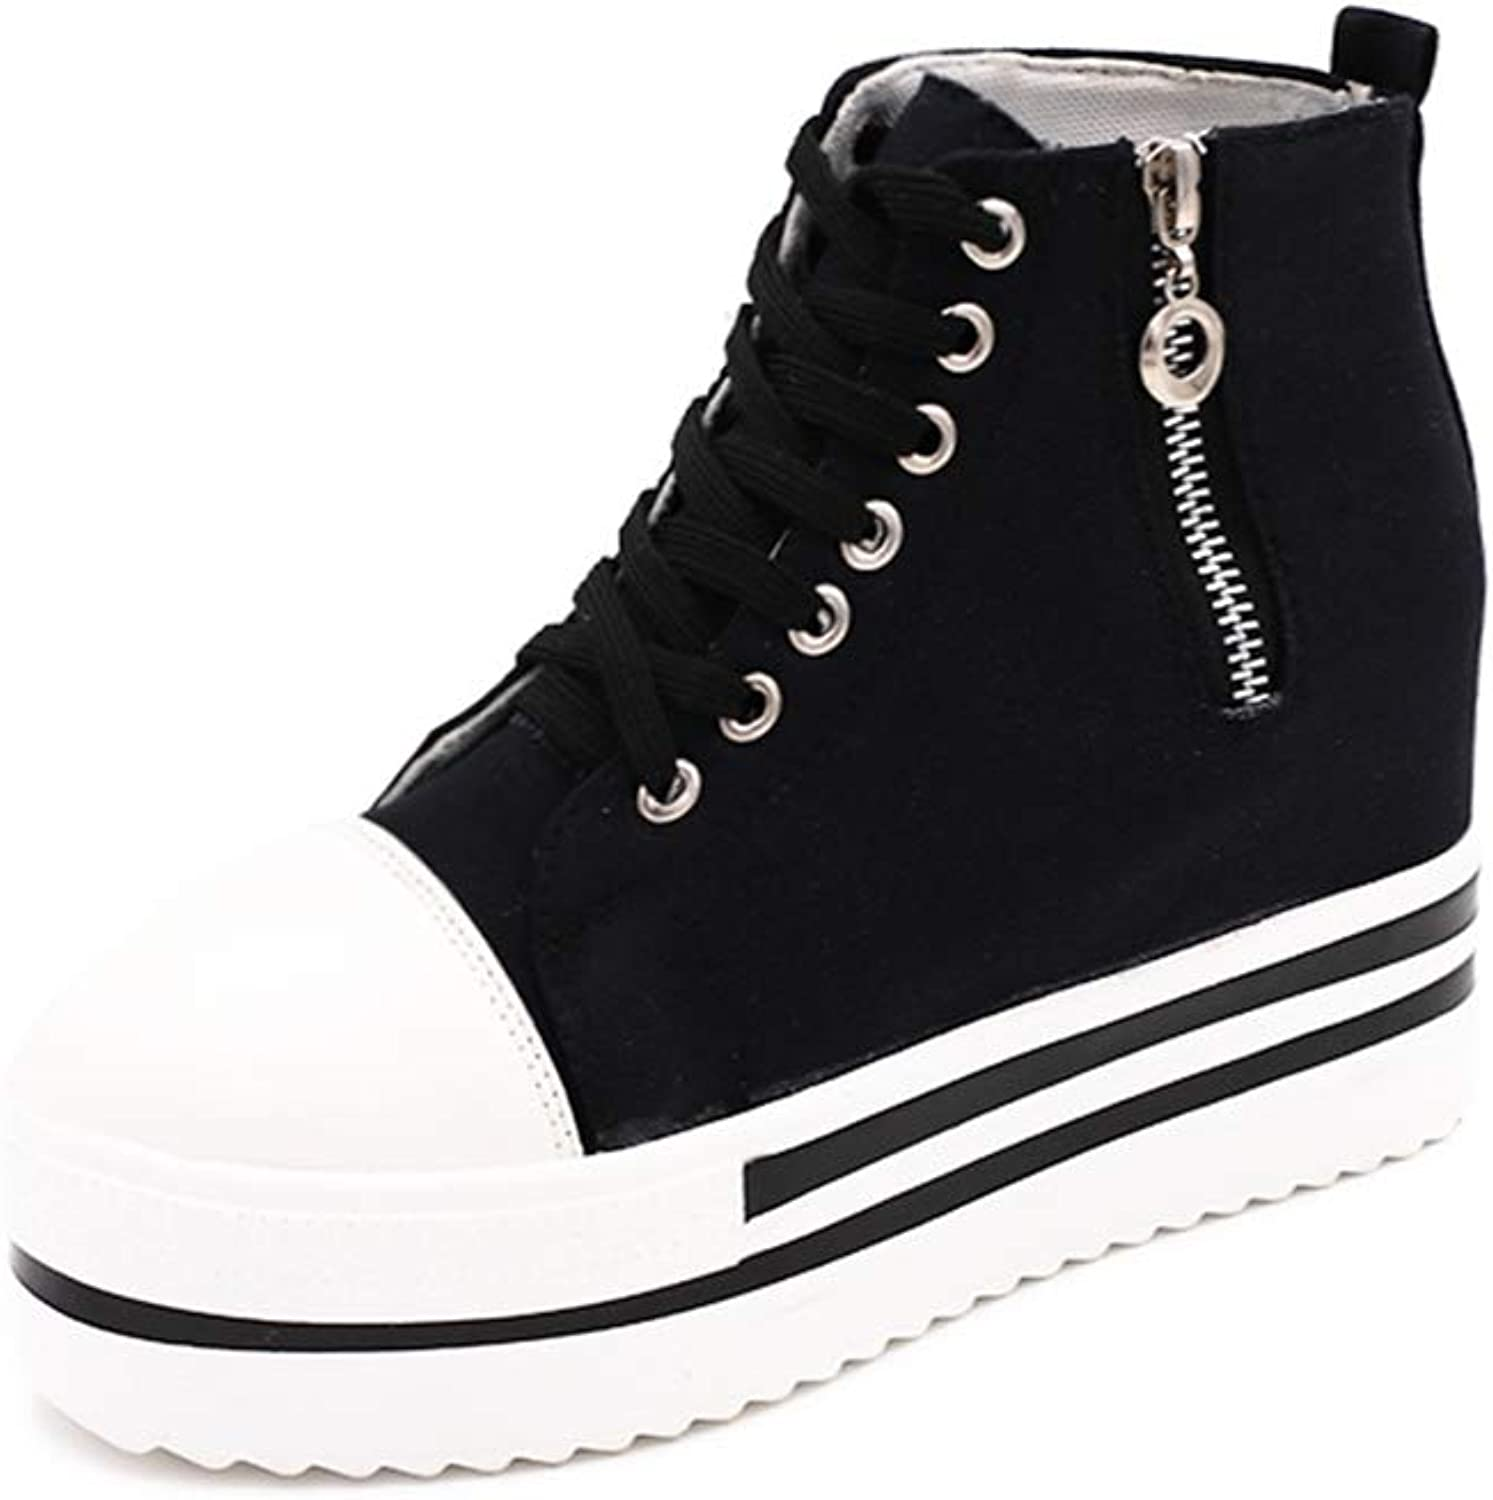 Cloudless Canvas shoes Women Platform,Wedges Zip Lace up High Top shoes